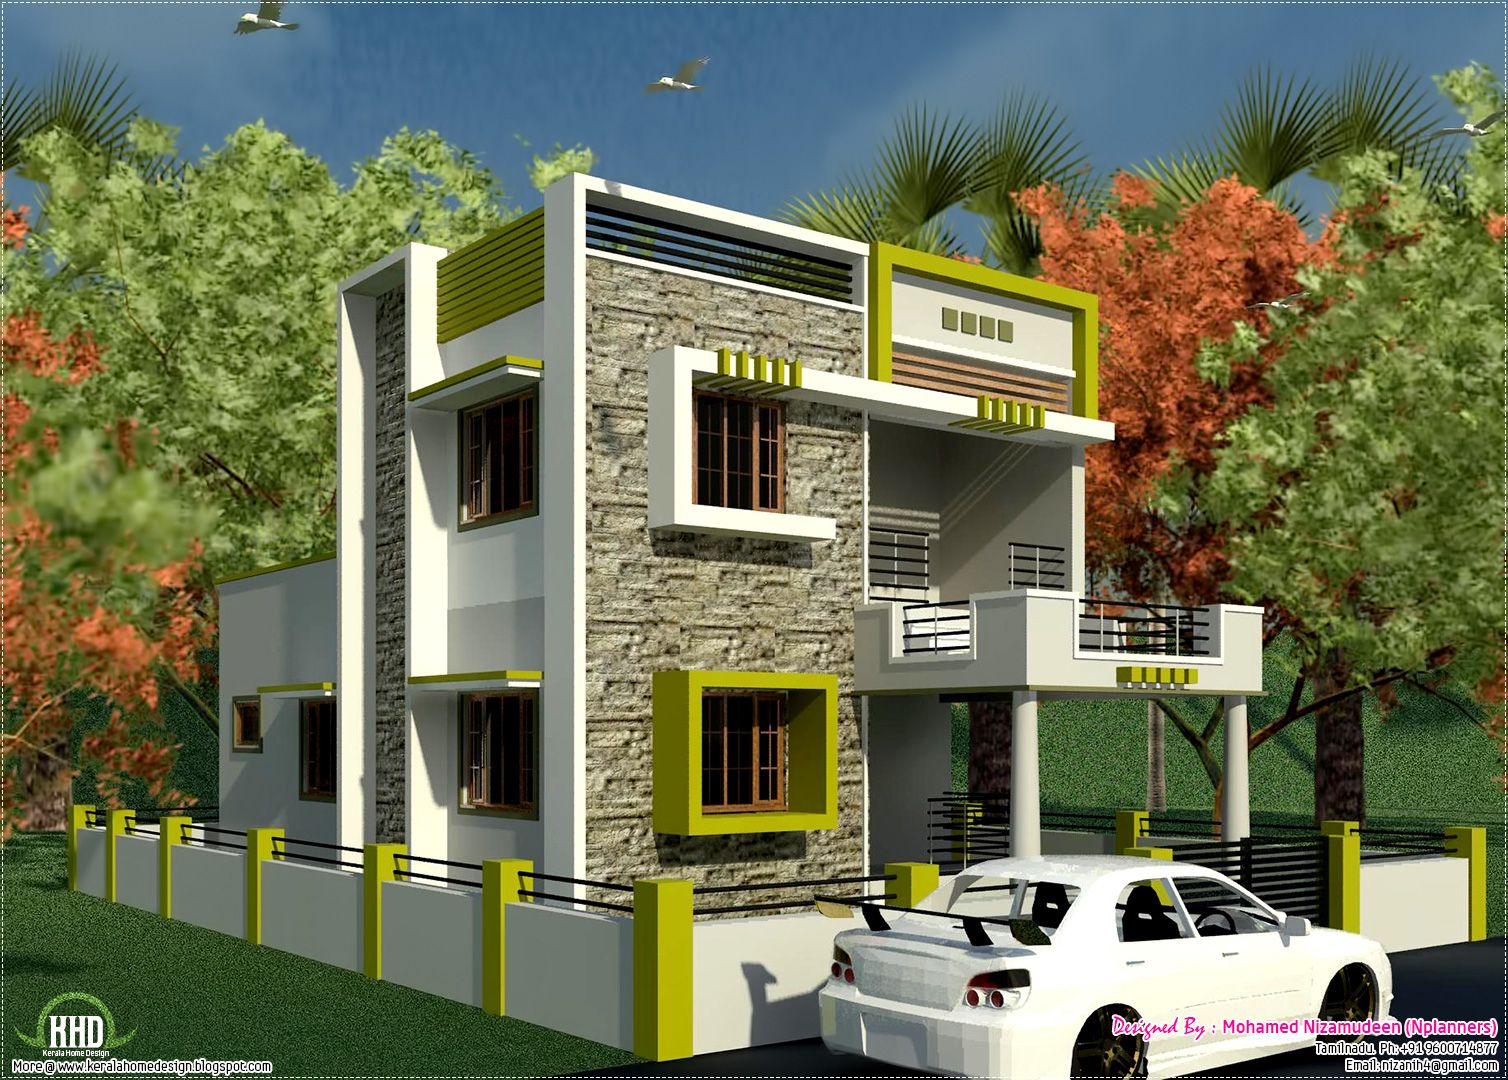 Small house with car park design tobfav com ideas for for Small indian house plans modern